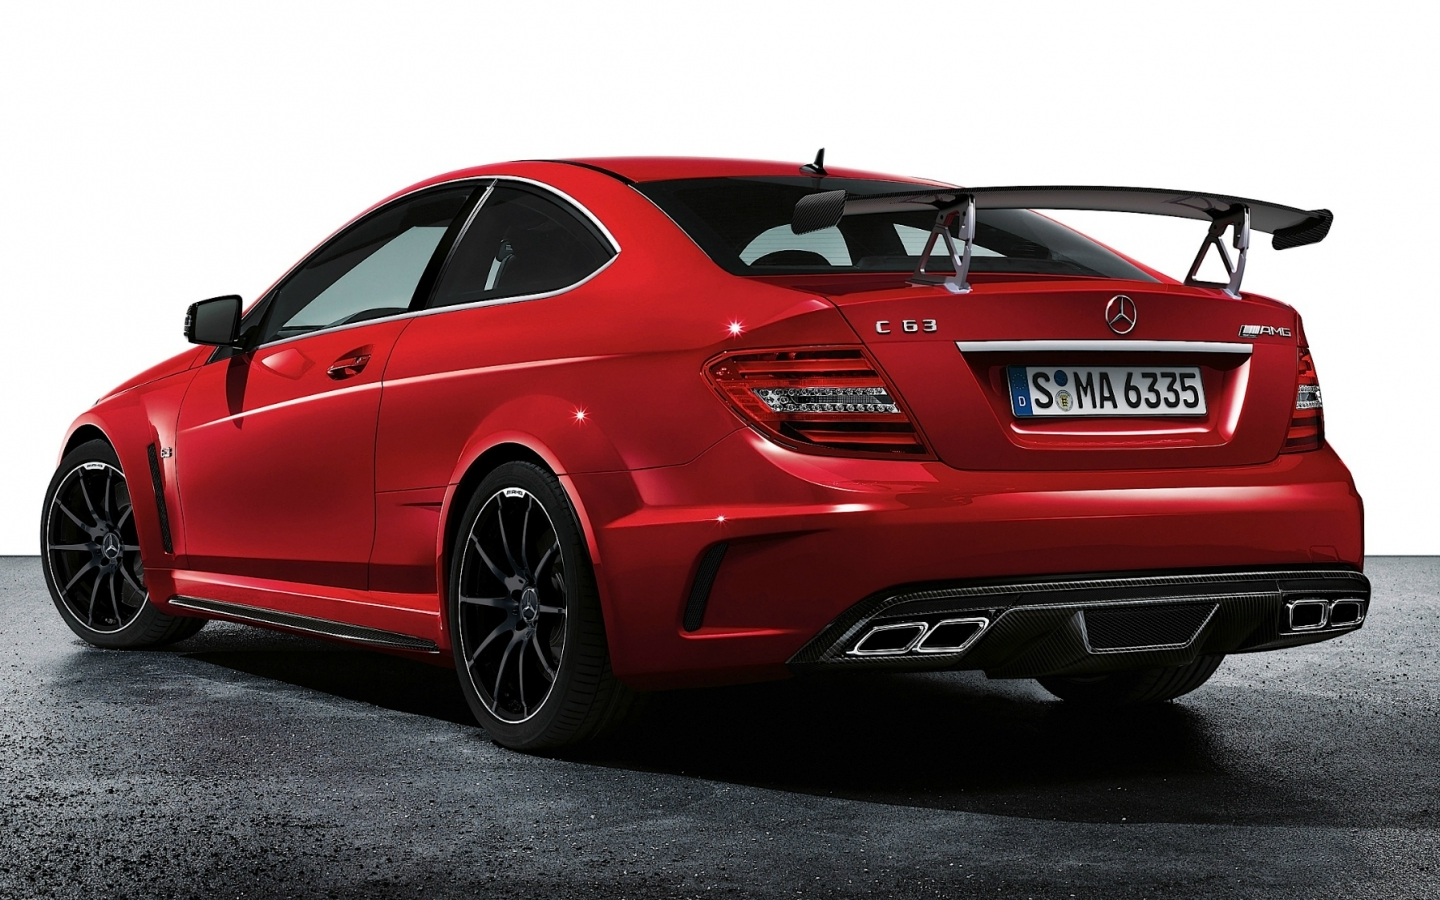 Mercedes benz c63 amg coupe wallpaper 1440x900 17424 for C63 mercedes benz